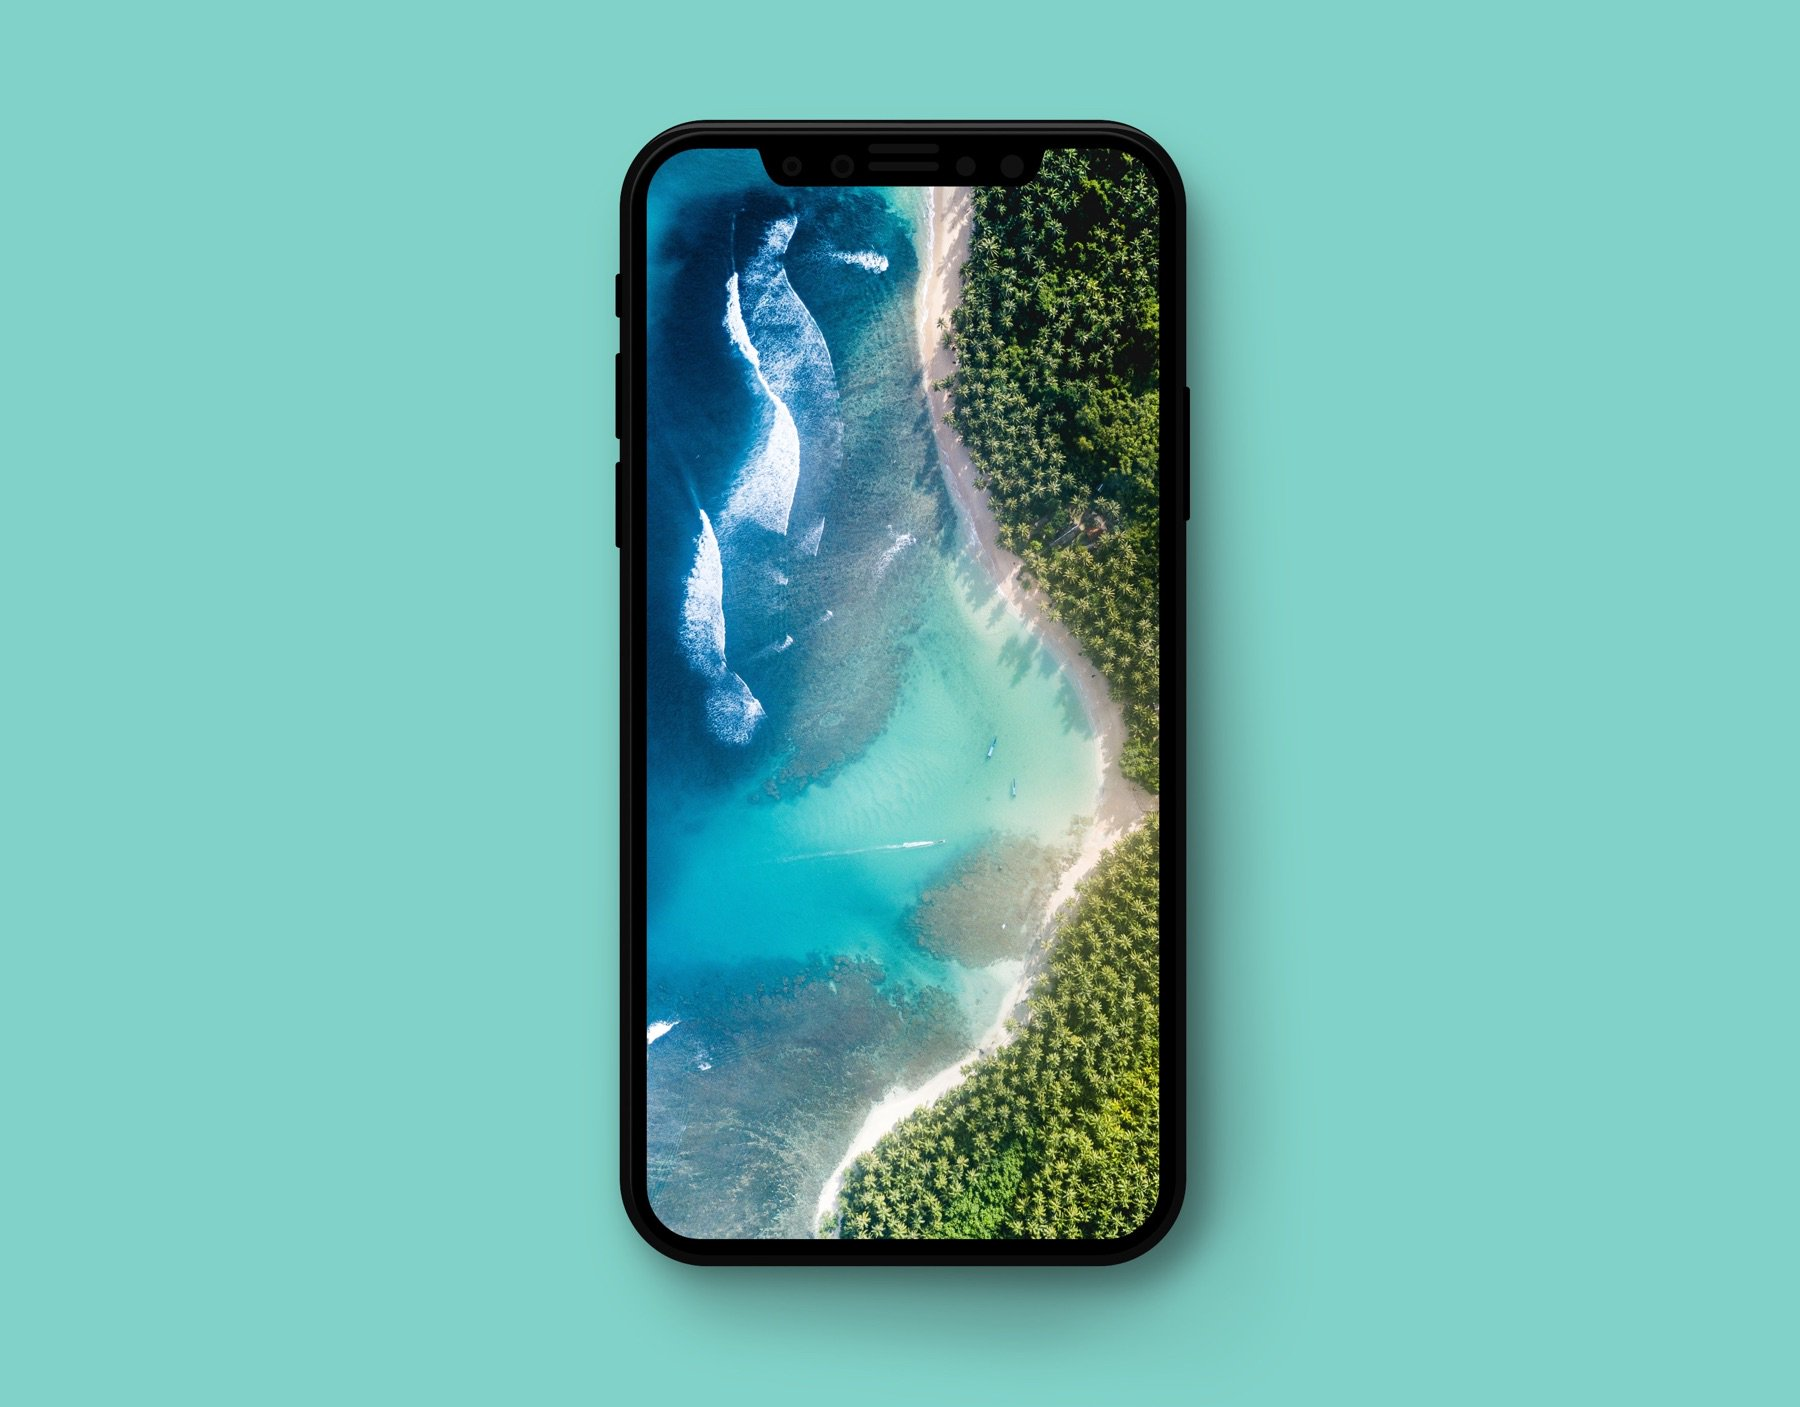 Iphone X Iphone 10 Hd Wallpapers: Rumor: Apple To Release Multi-device Wireless Charger In 2018